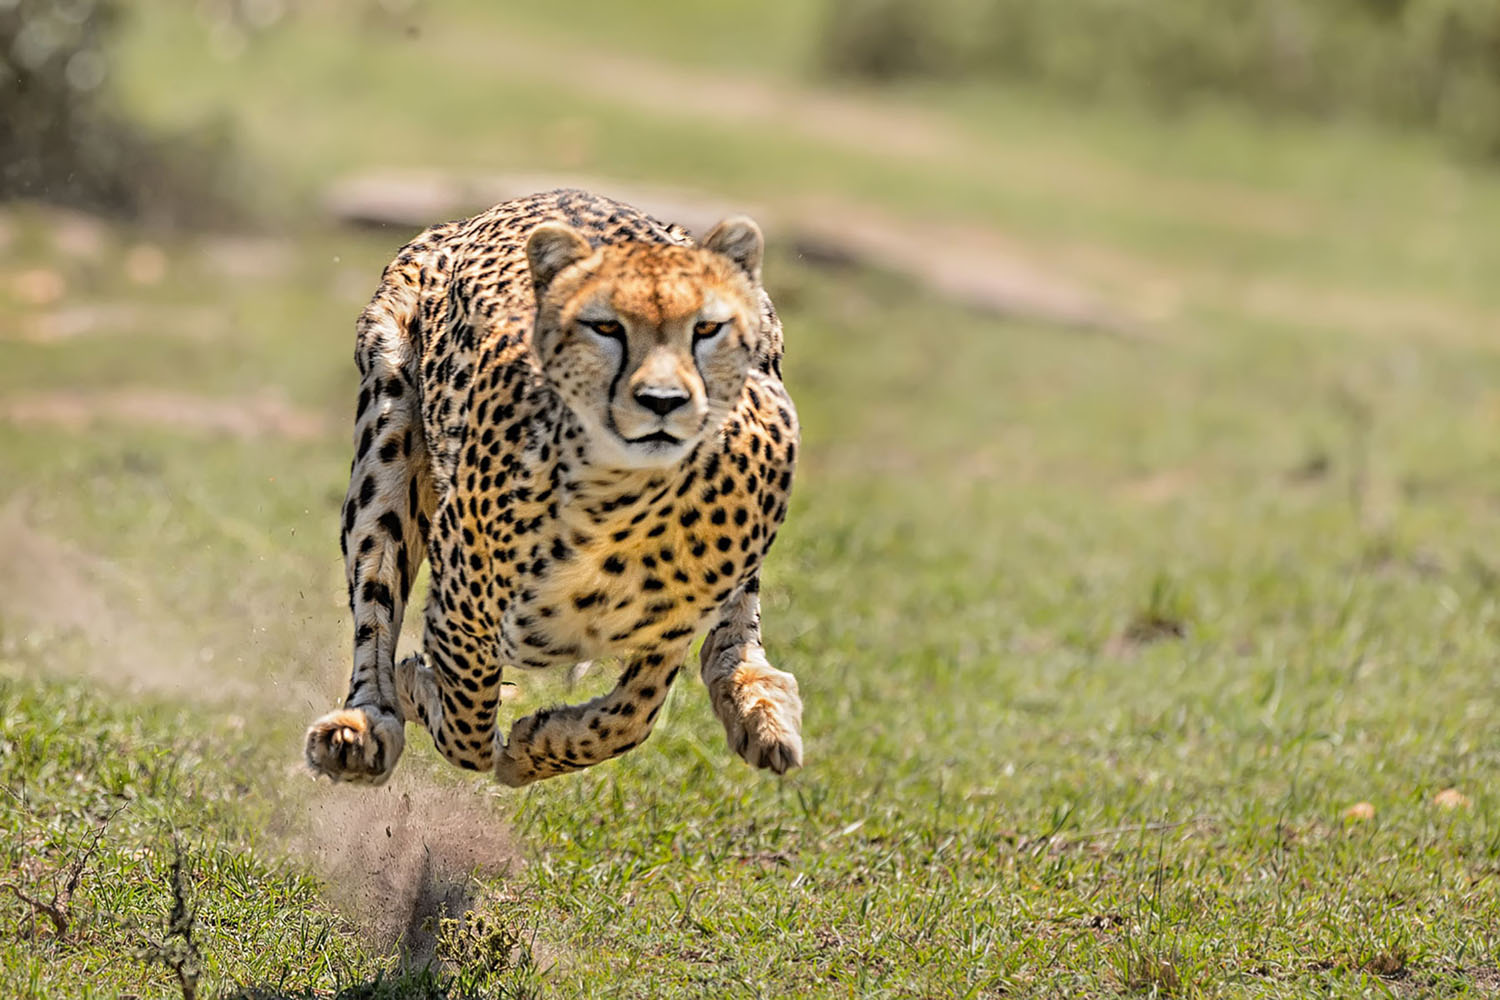 A cheetah caught in mid-air as it runs through the African Savanna.